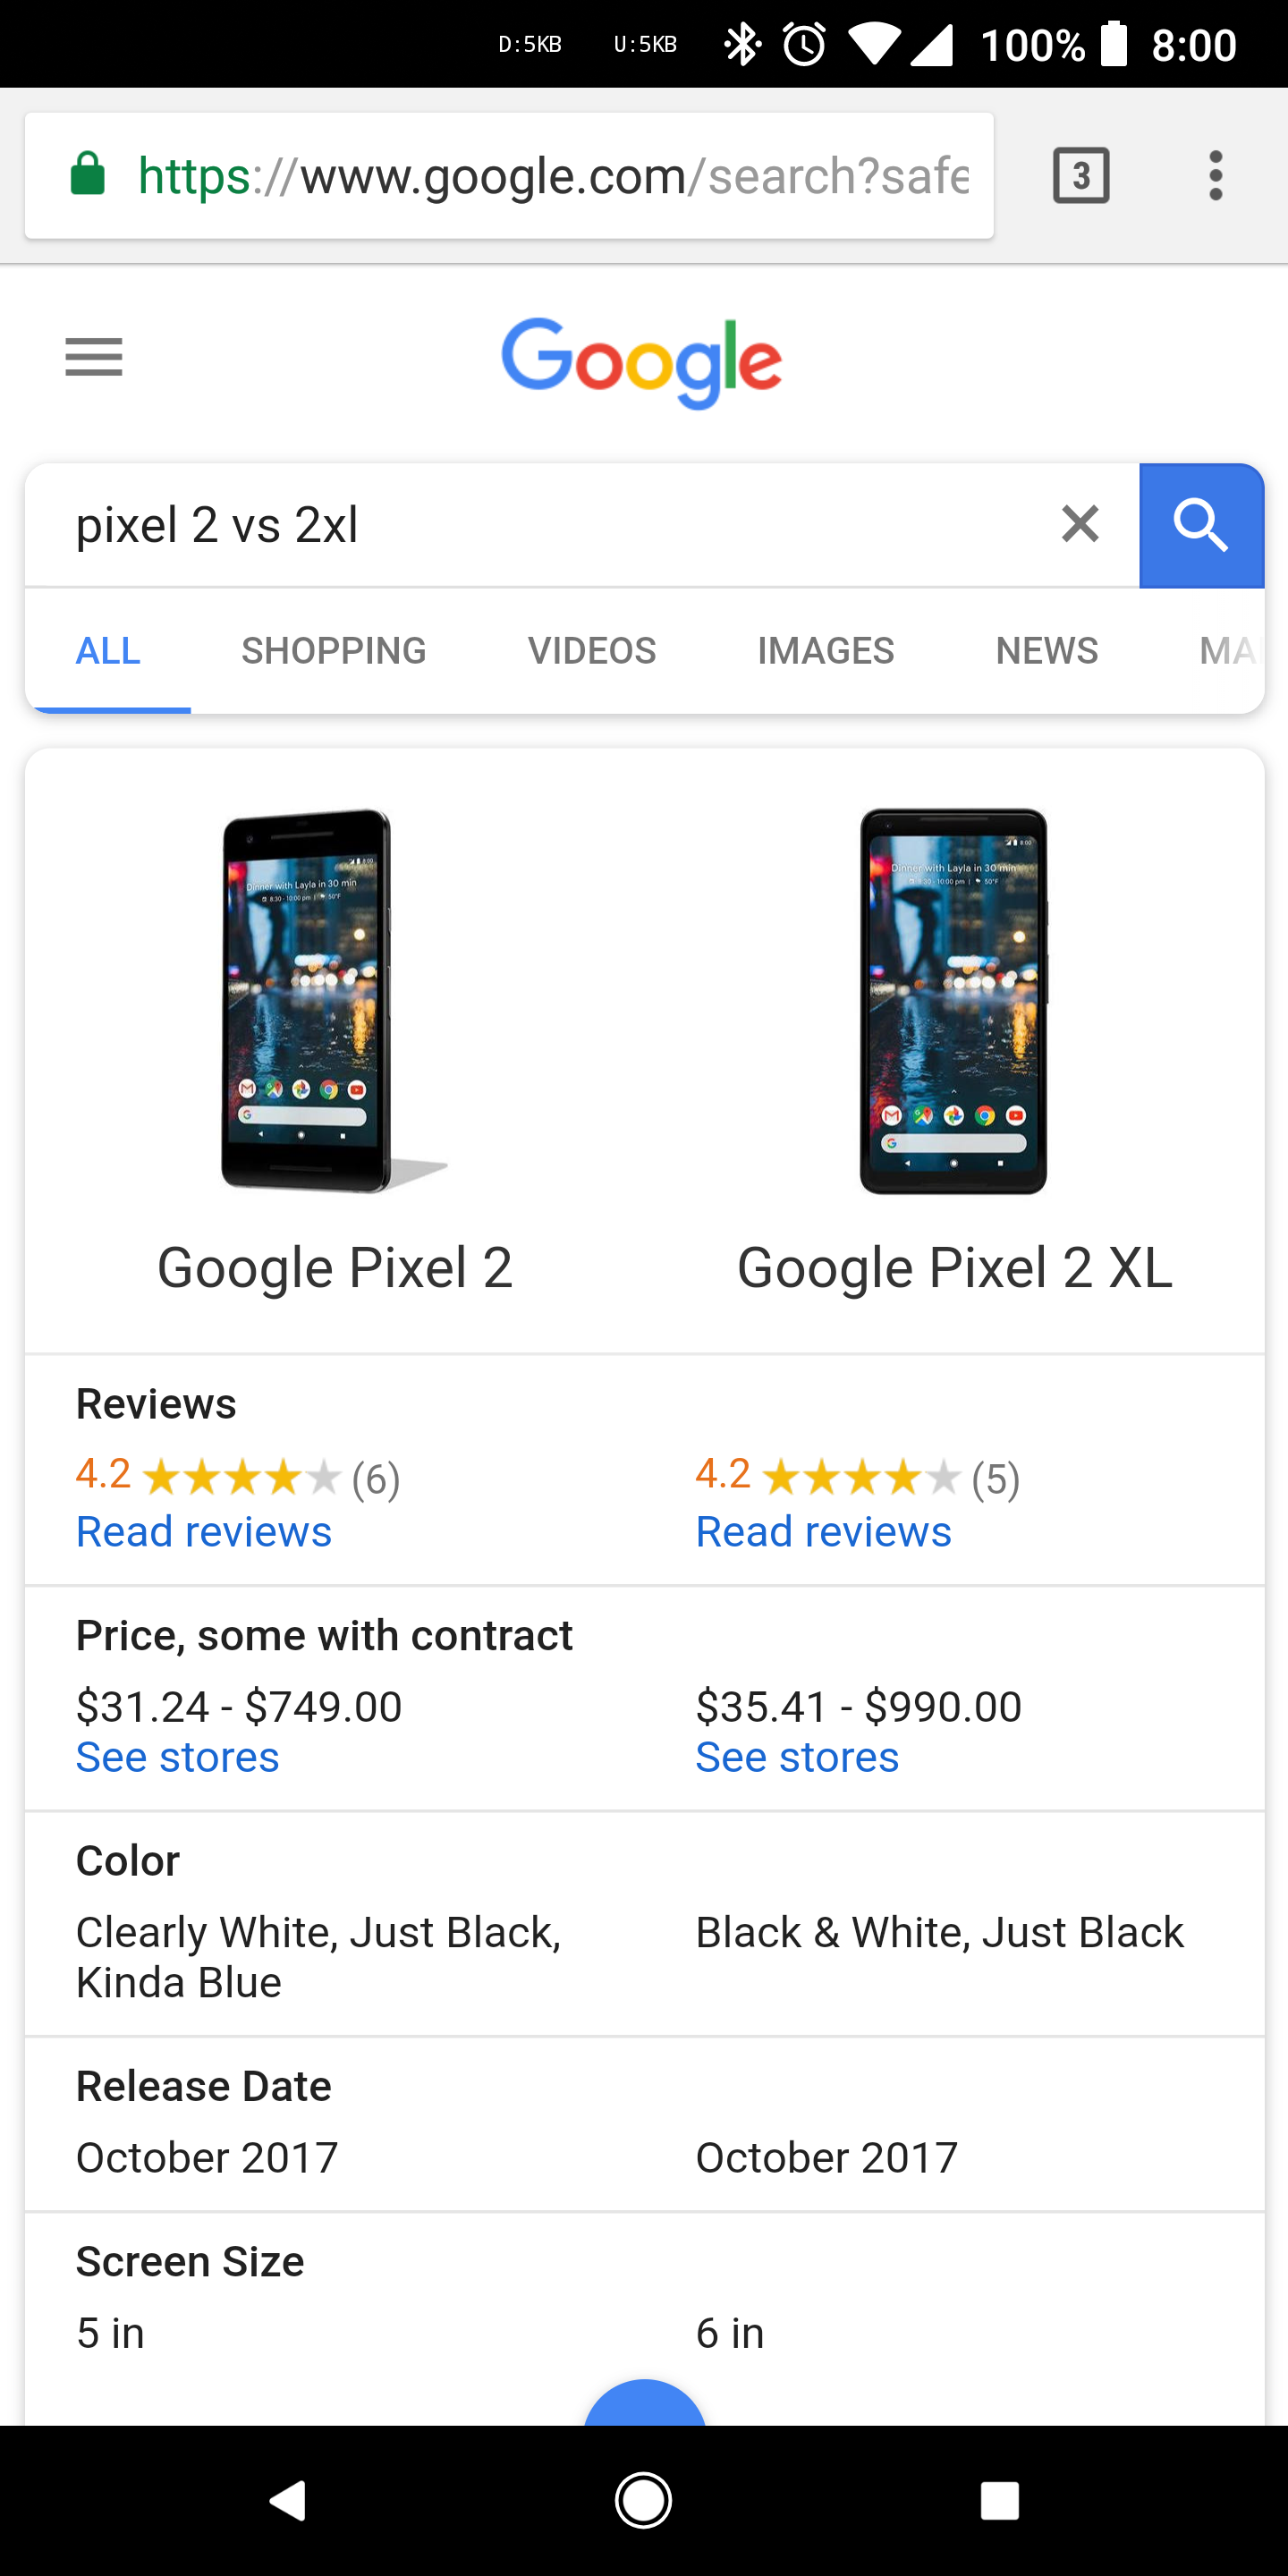 Pixel 2 vs Pixel 2 XL comparison